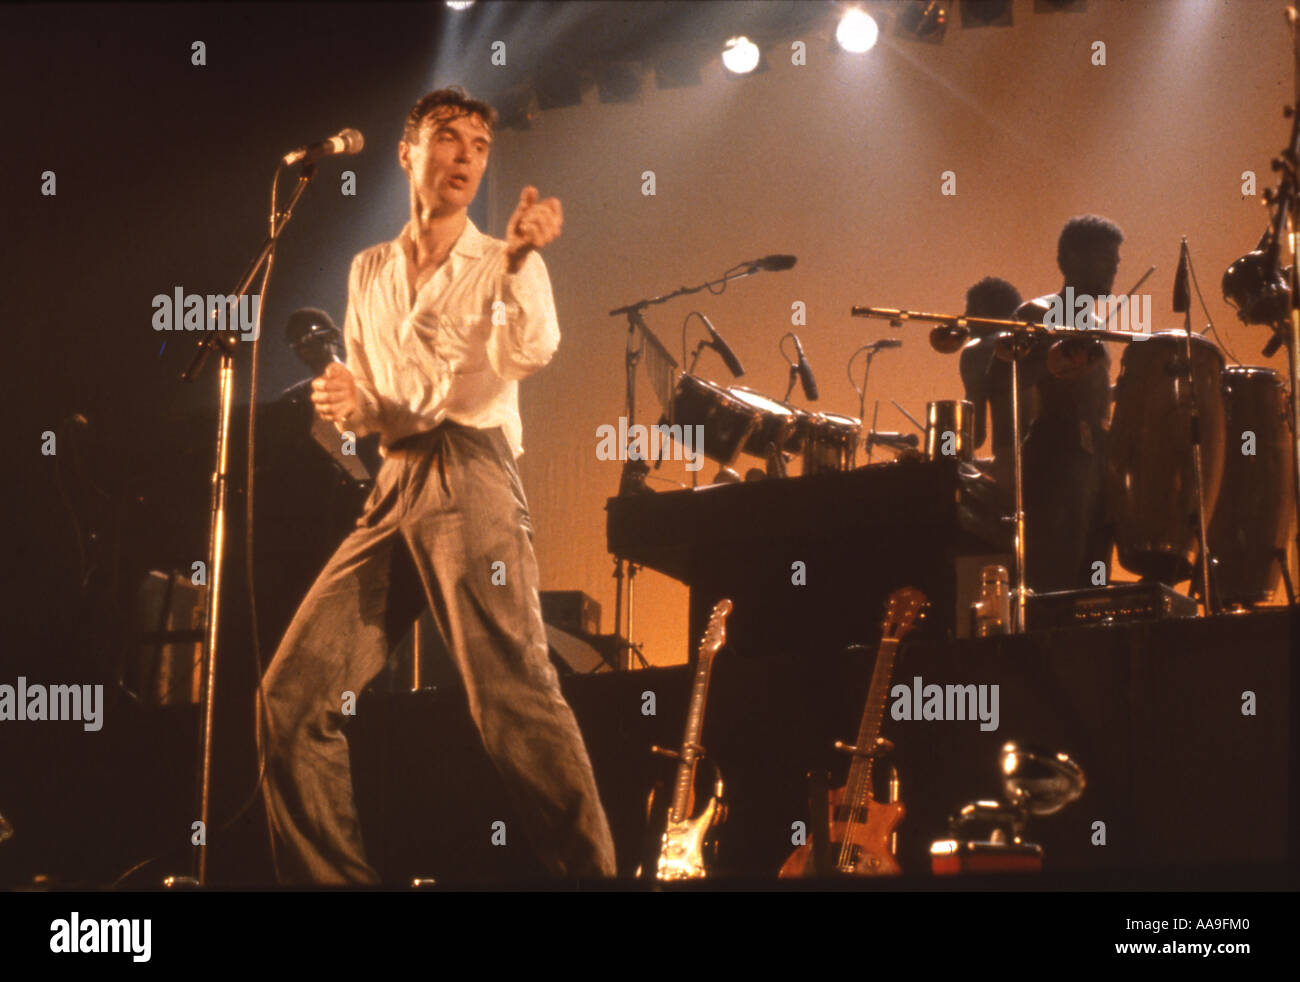 SIMPLE MINDS with David Byrne - Stock Image